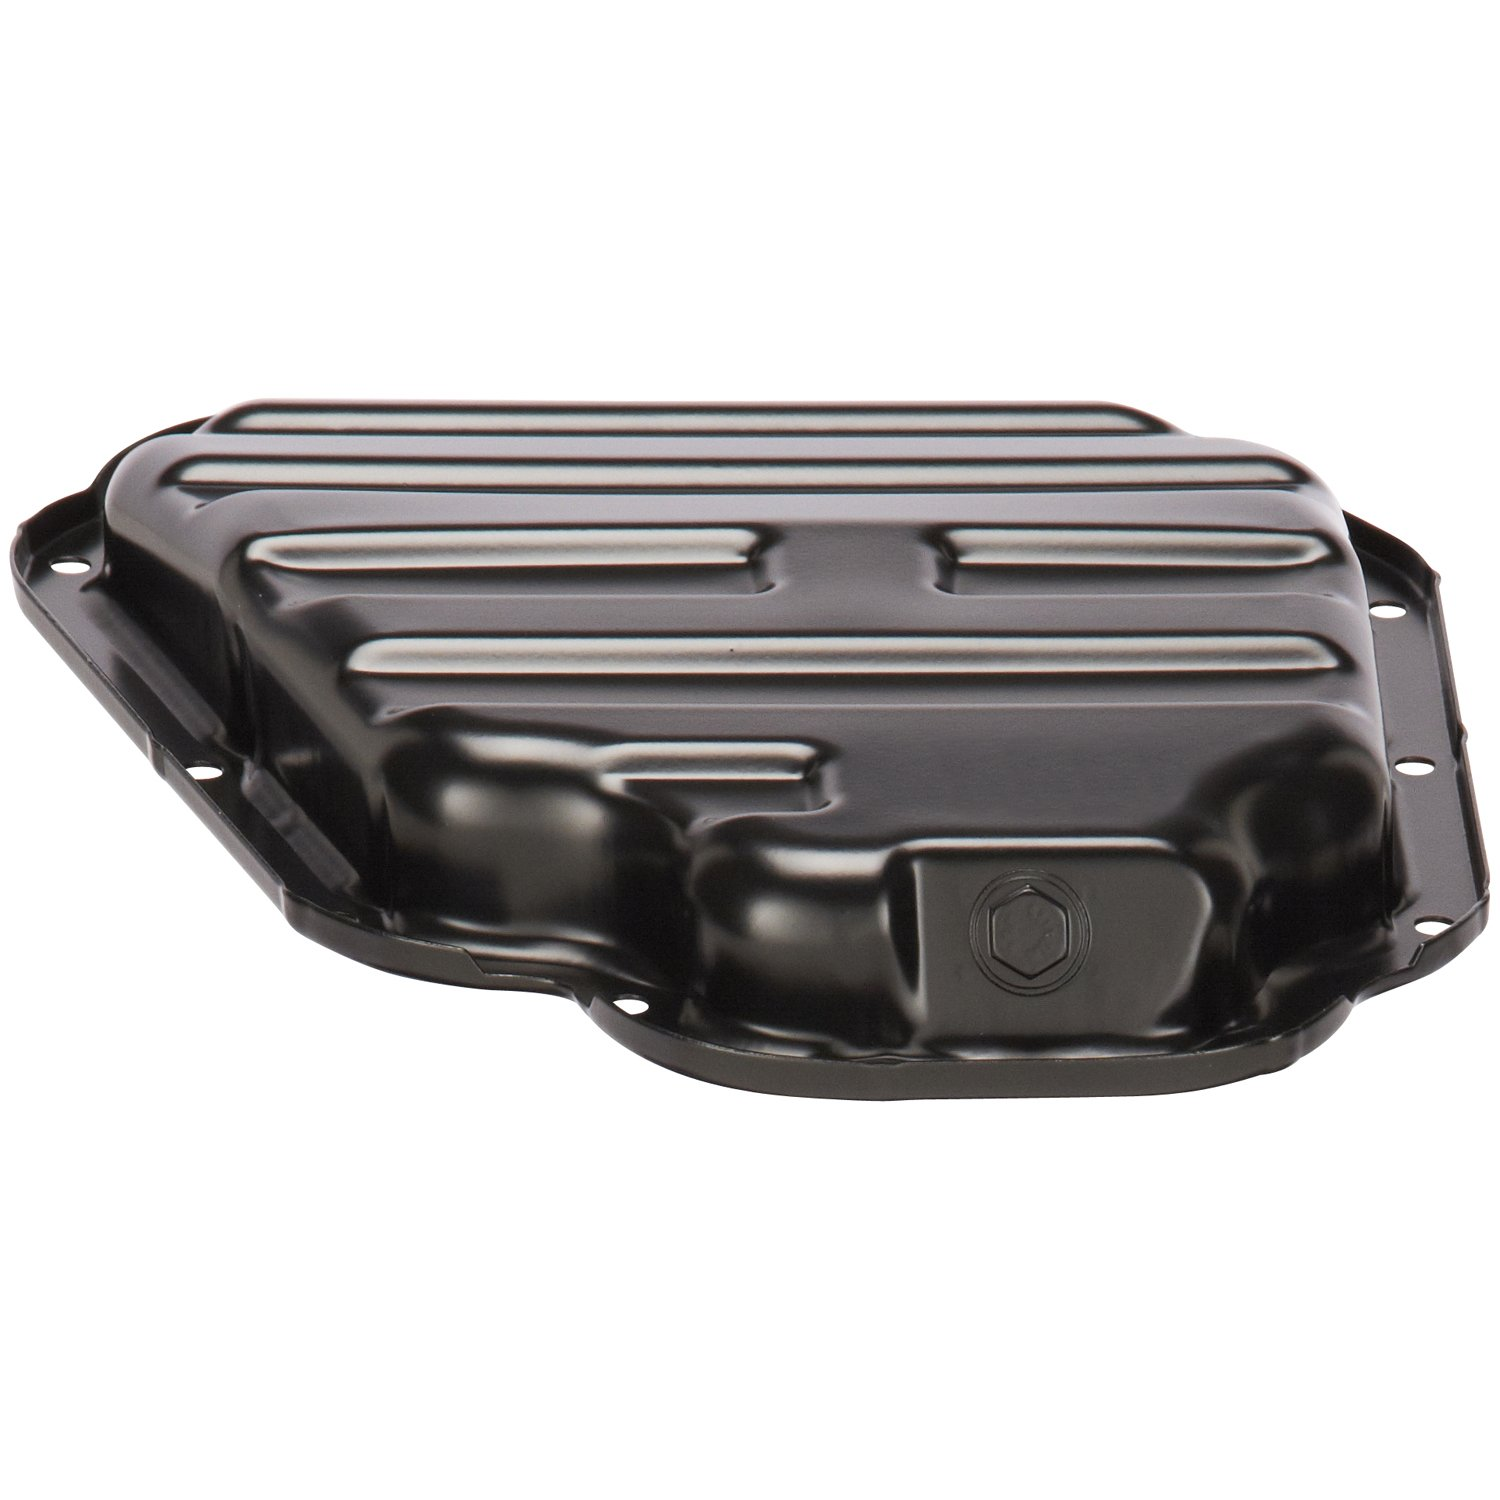 Spectra Premium NSP26A Engine Oil Pan